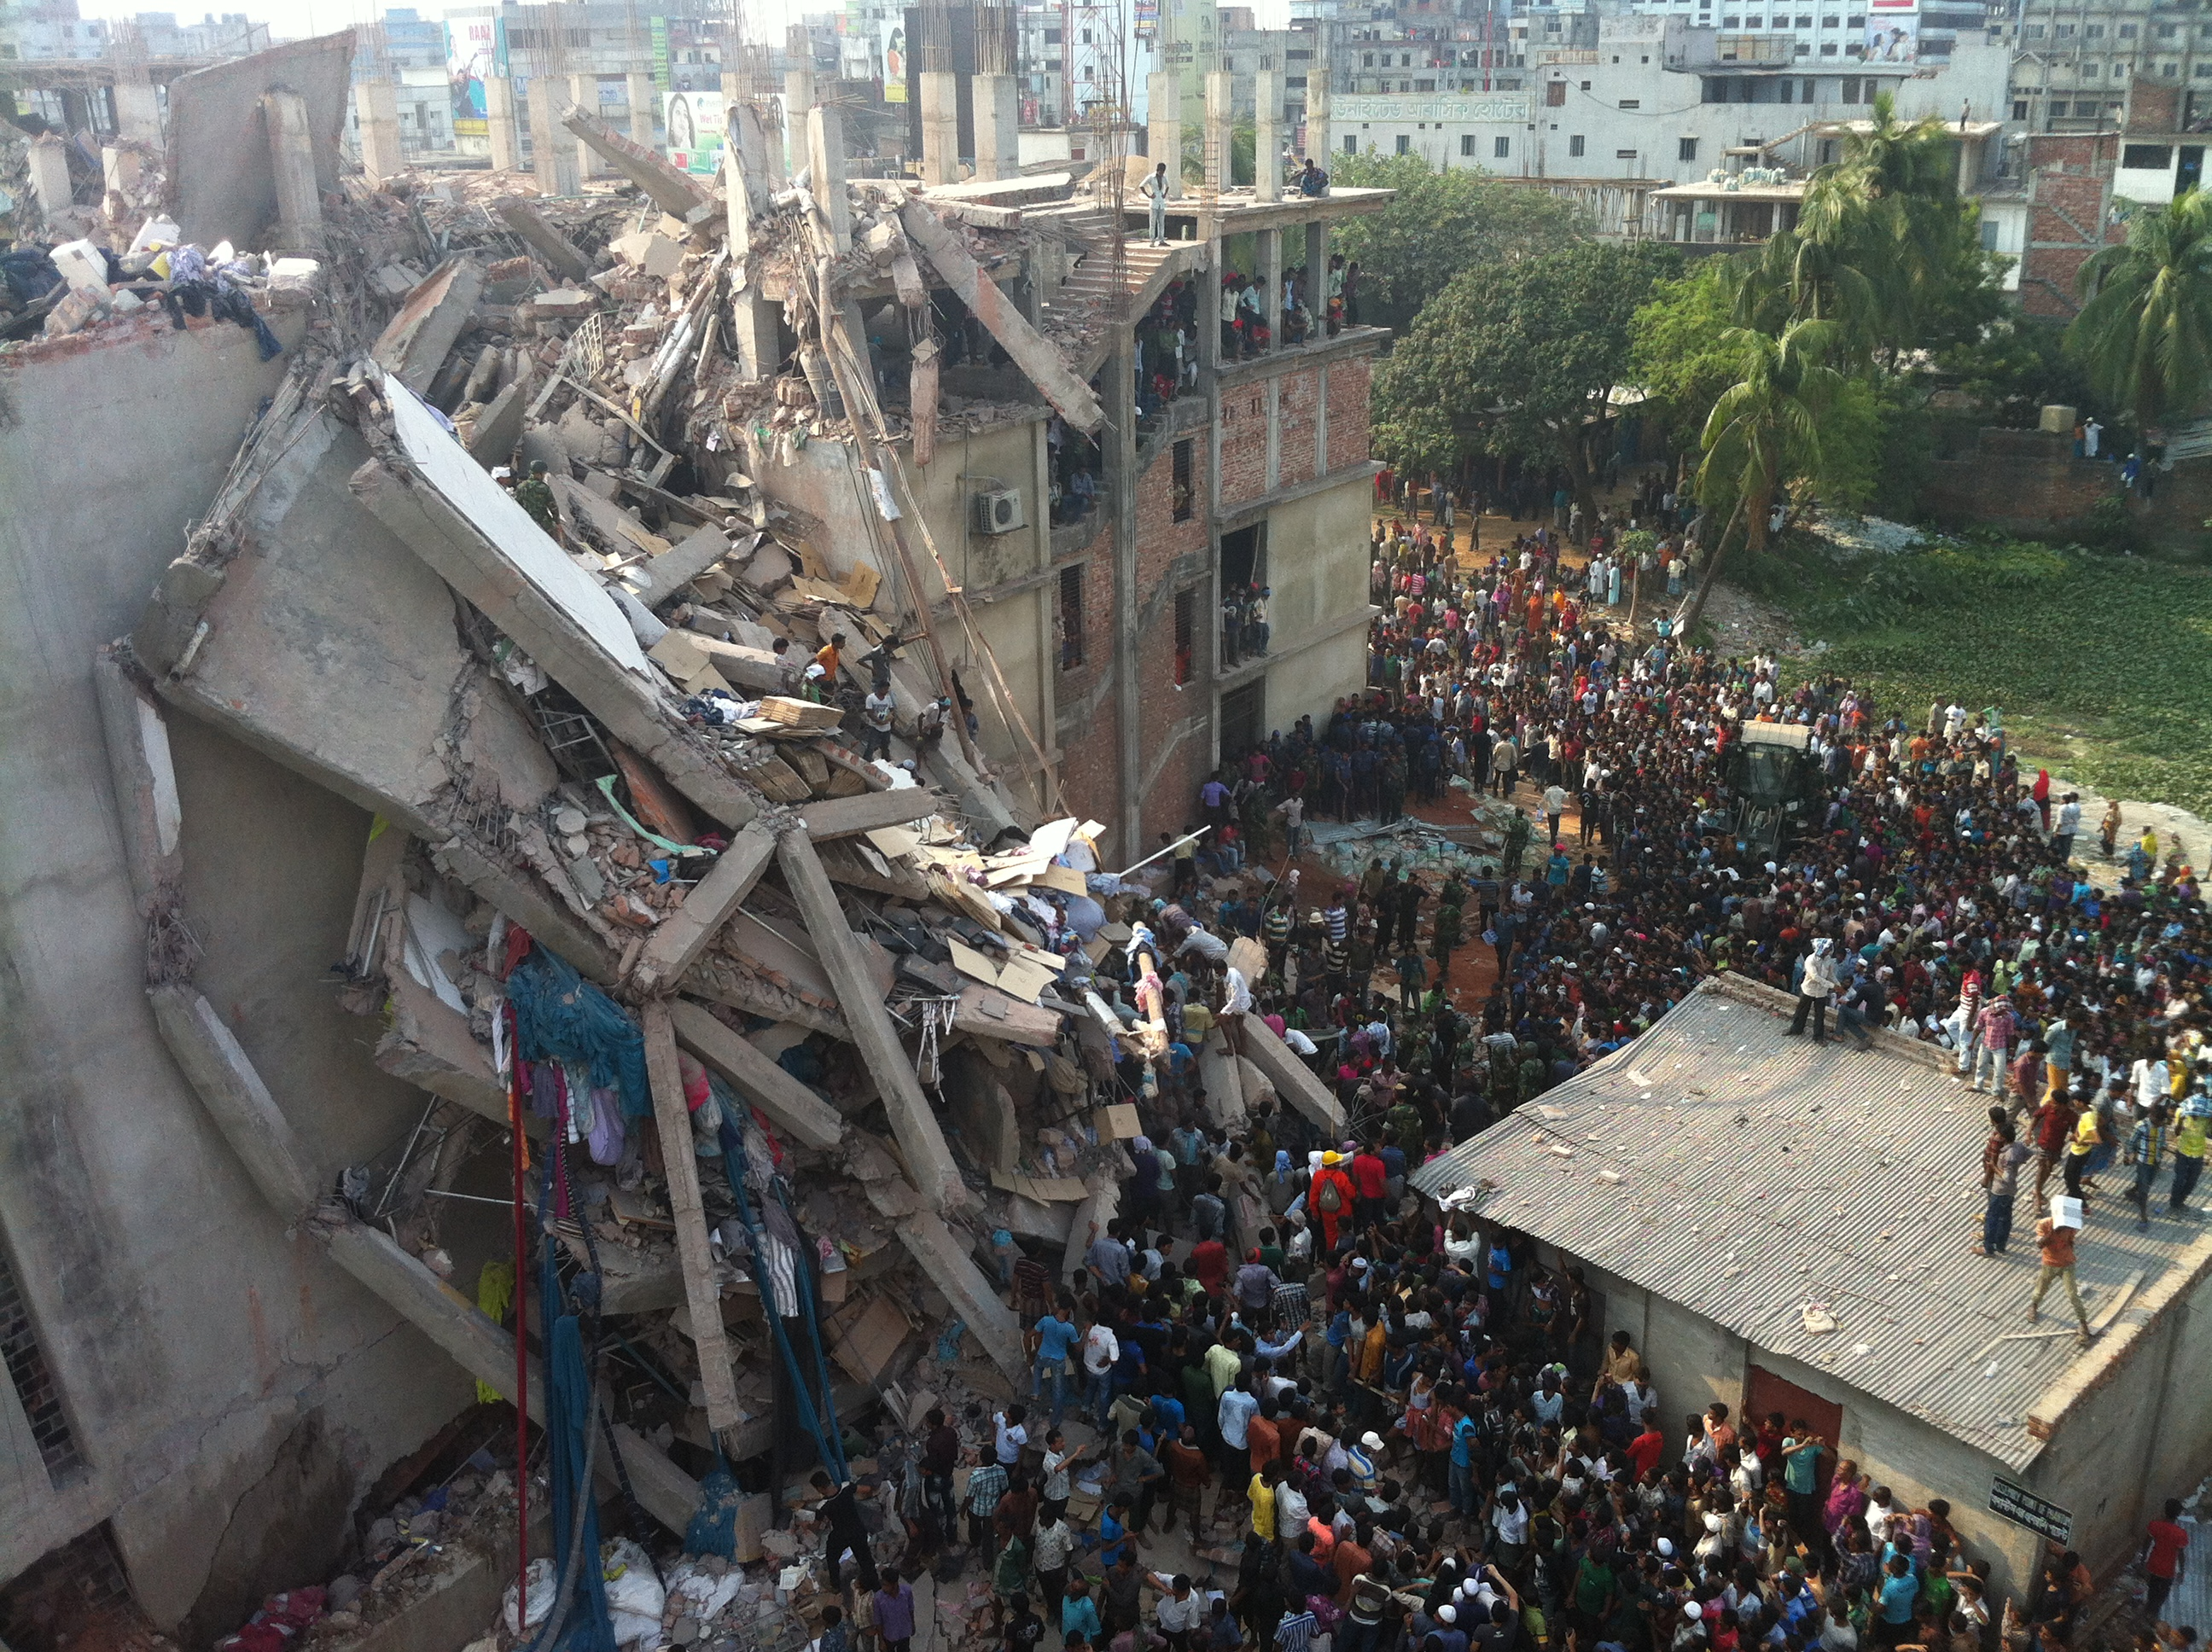 No justice in sight: 18 months from Rana Plaza